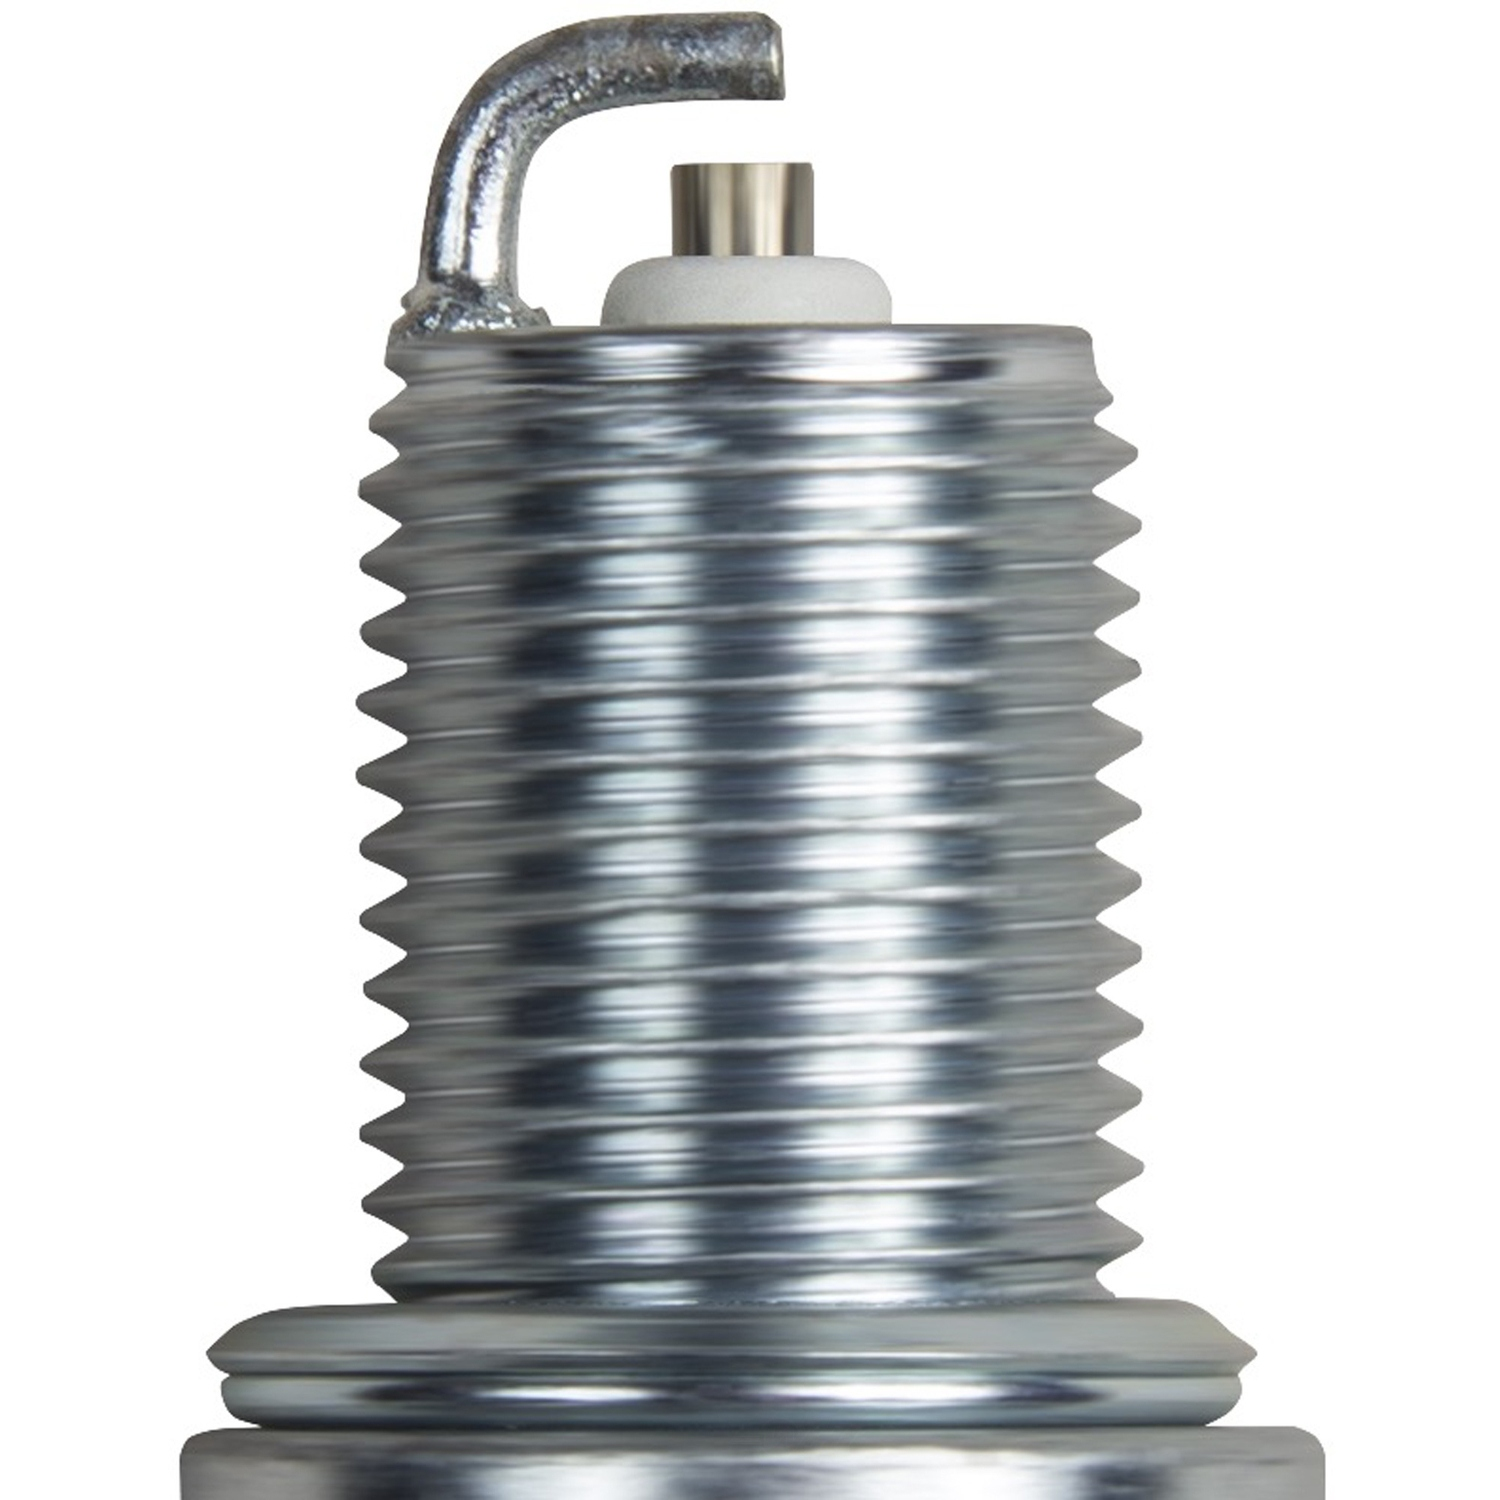 CHAMPION SPARK PLUGS - Copper Plus Spark Plug - CHA 322